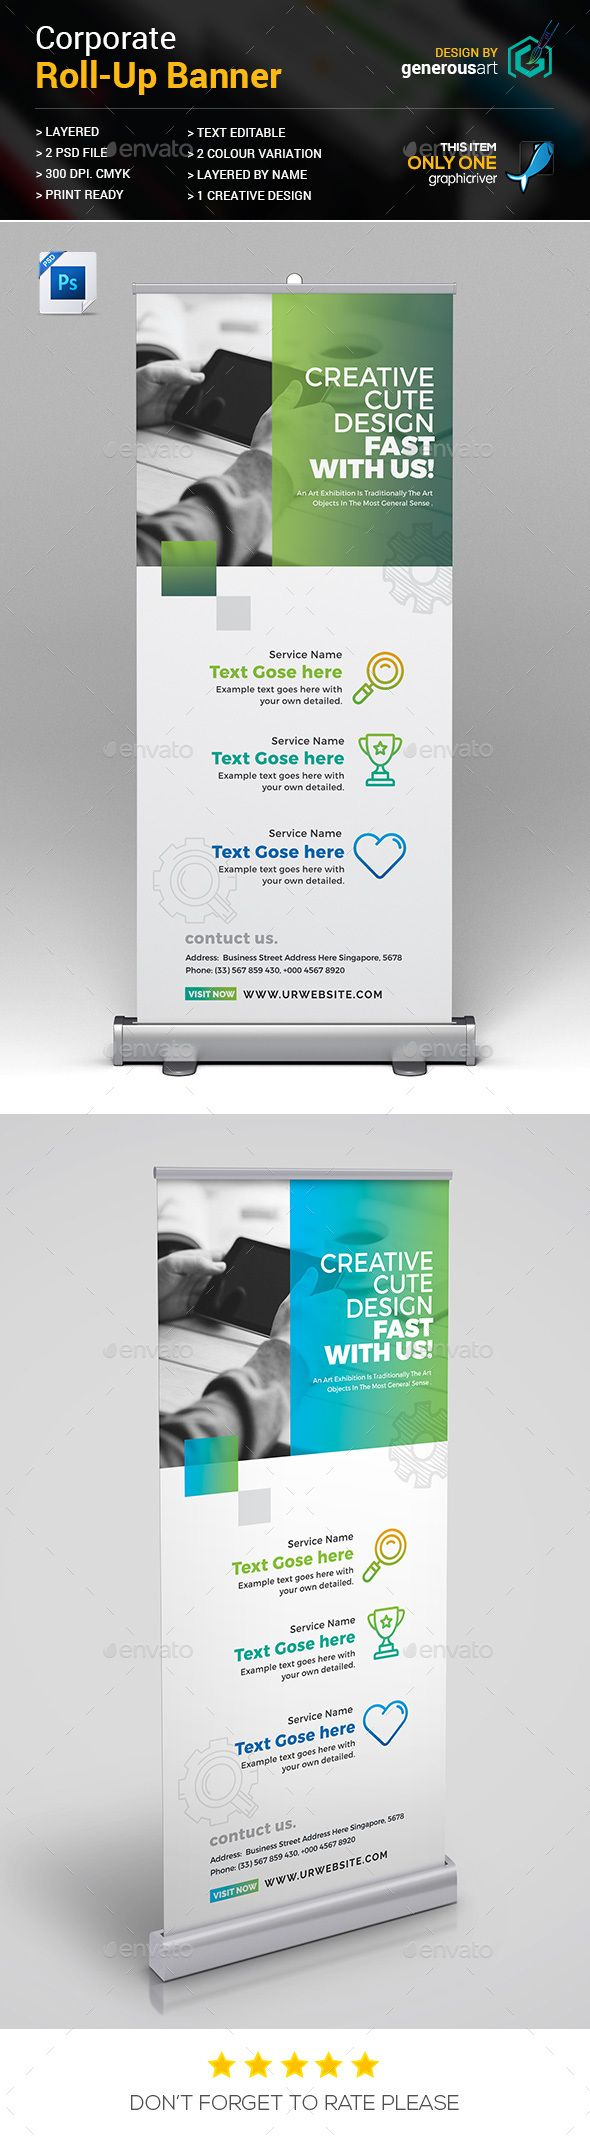 corporate creative roll up banner ads design template signage rollup banner design template psd